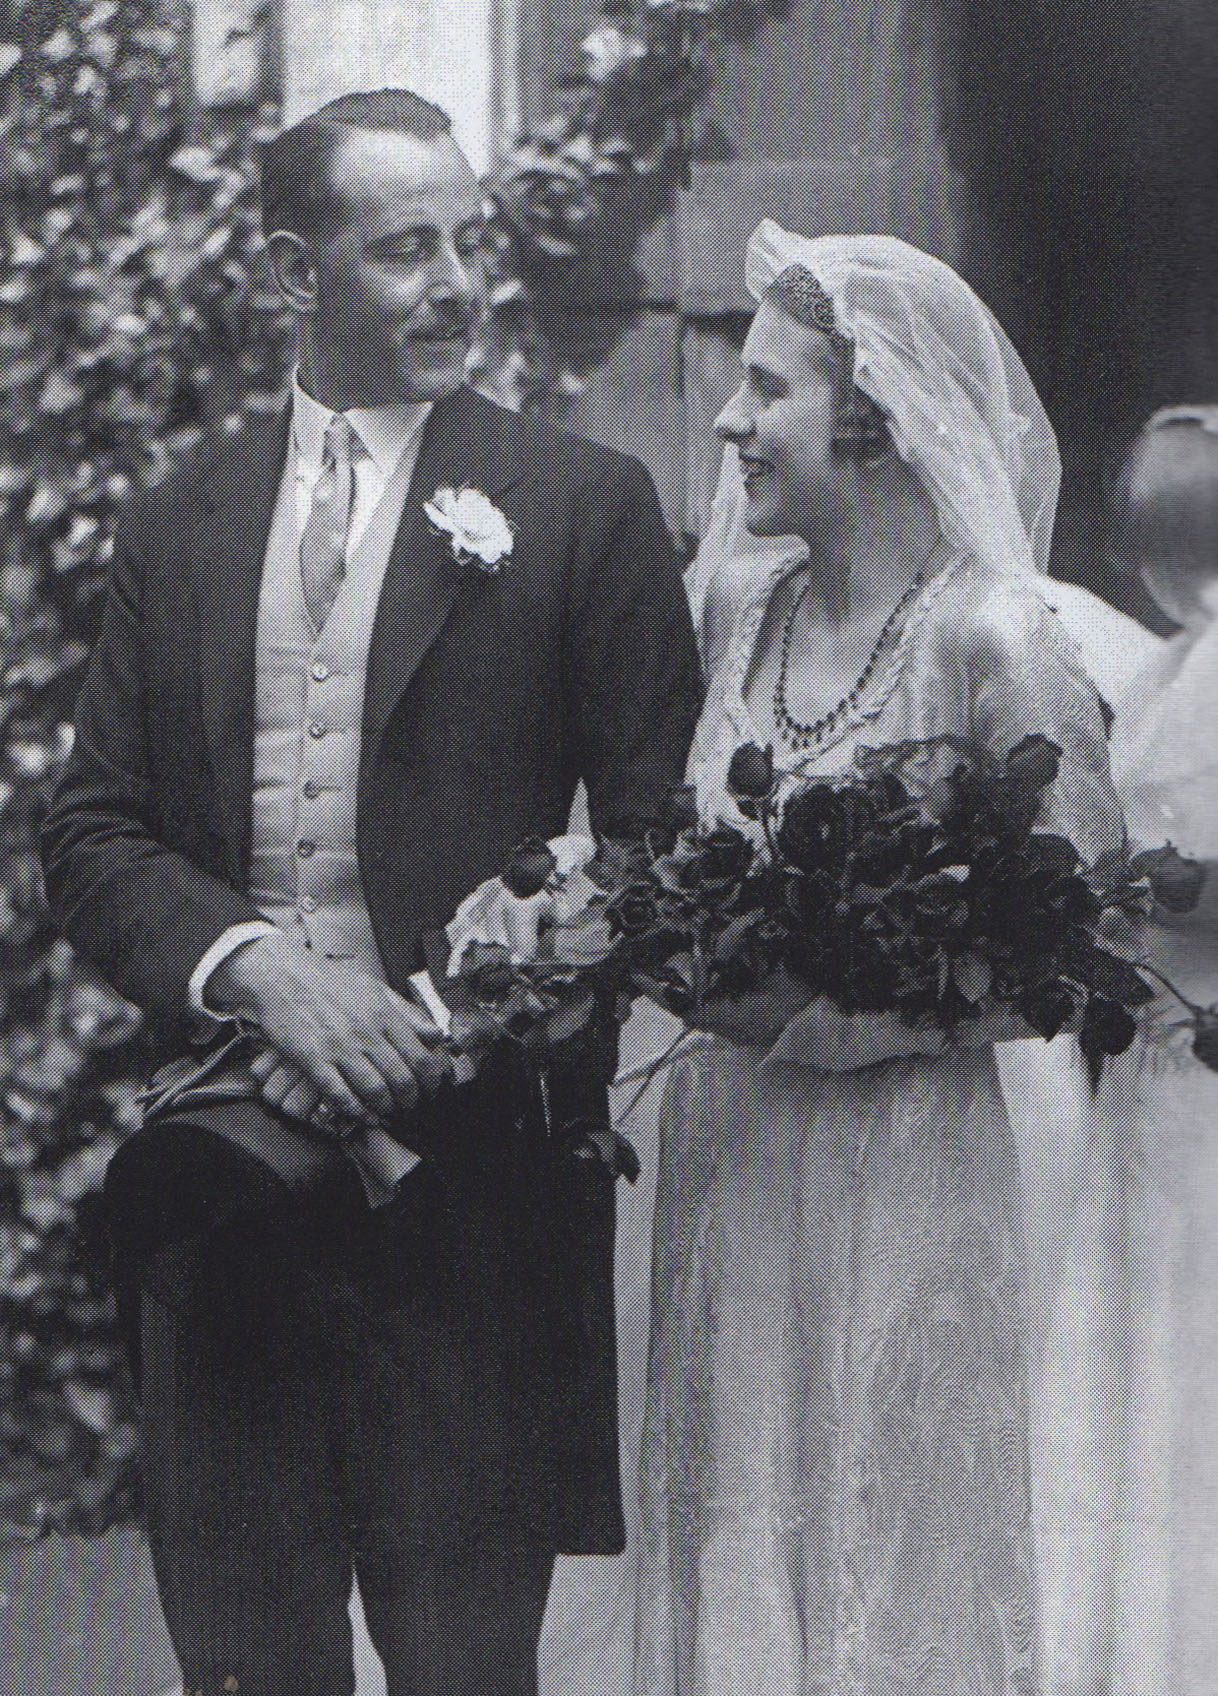 Ursula marries Michael May